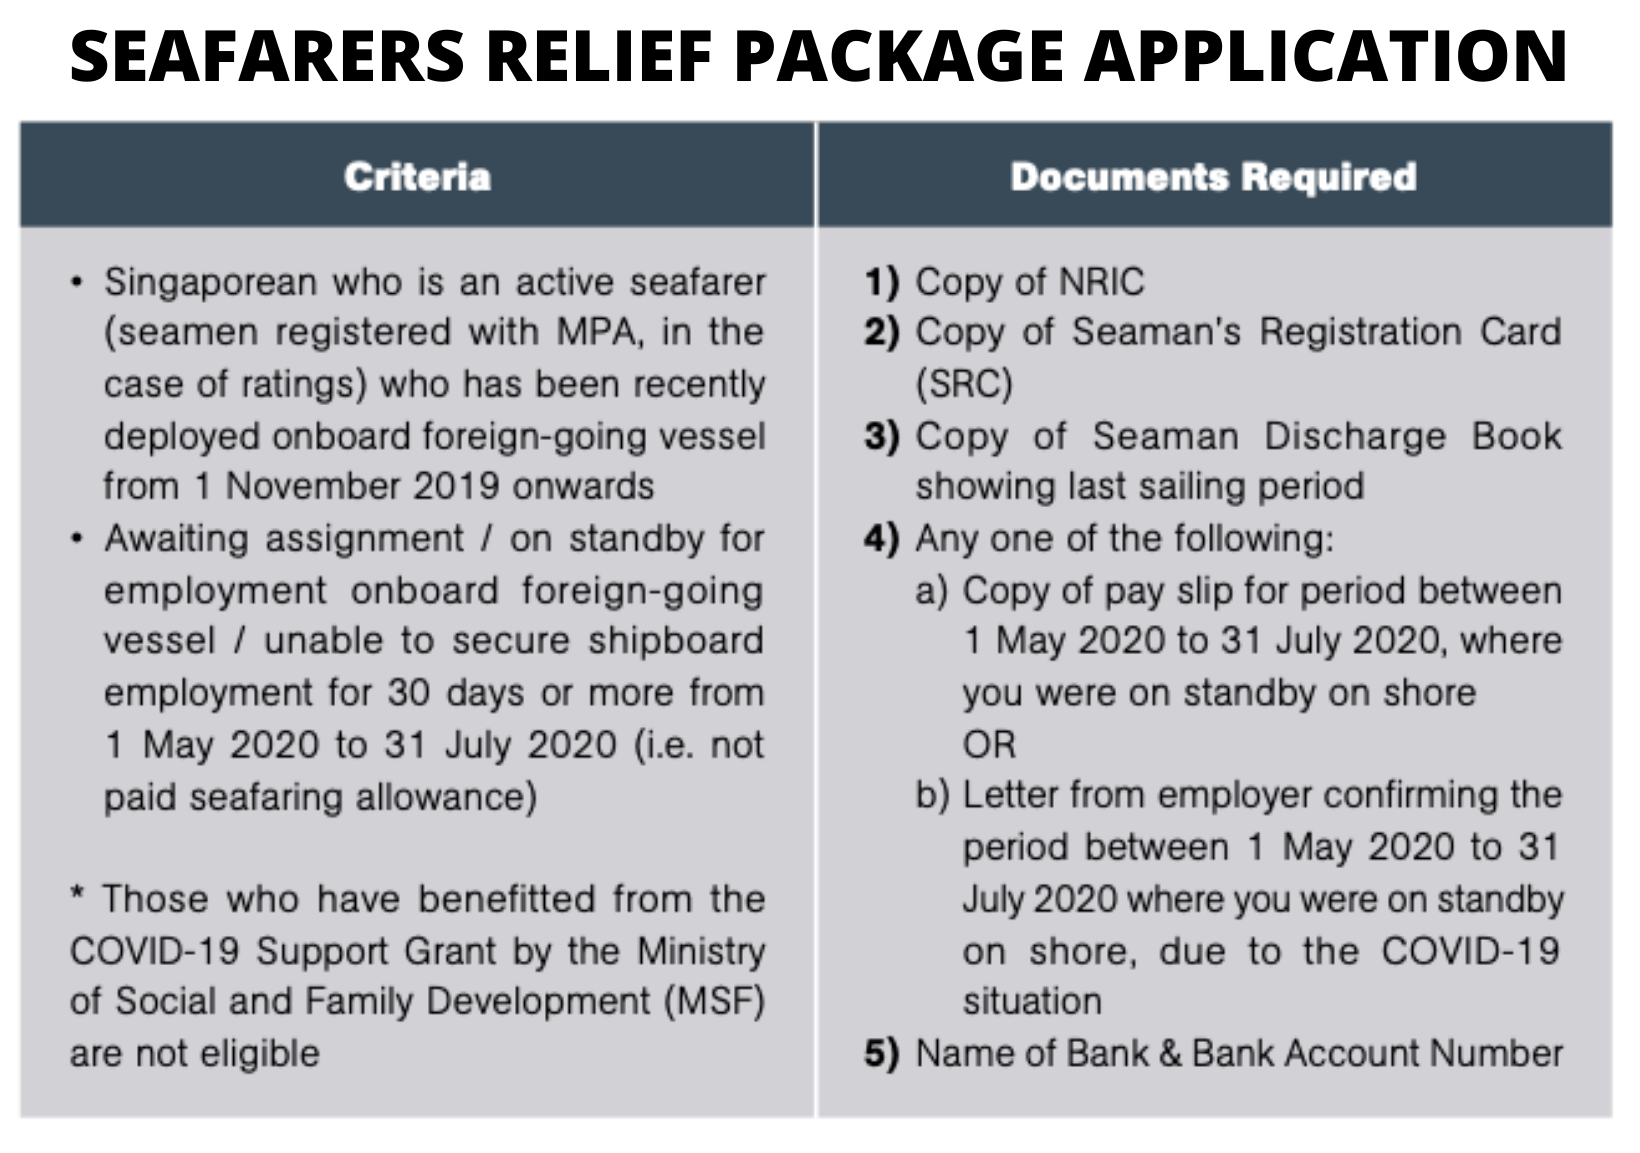 Seafarers Relief Package